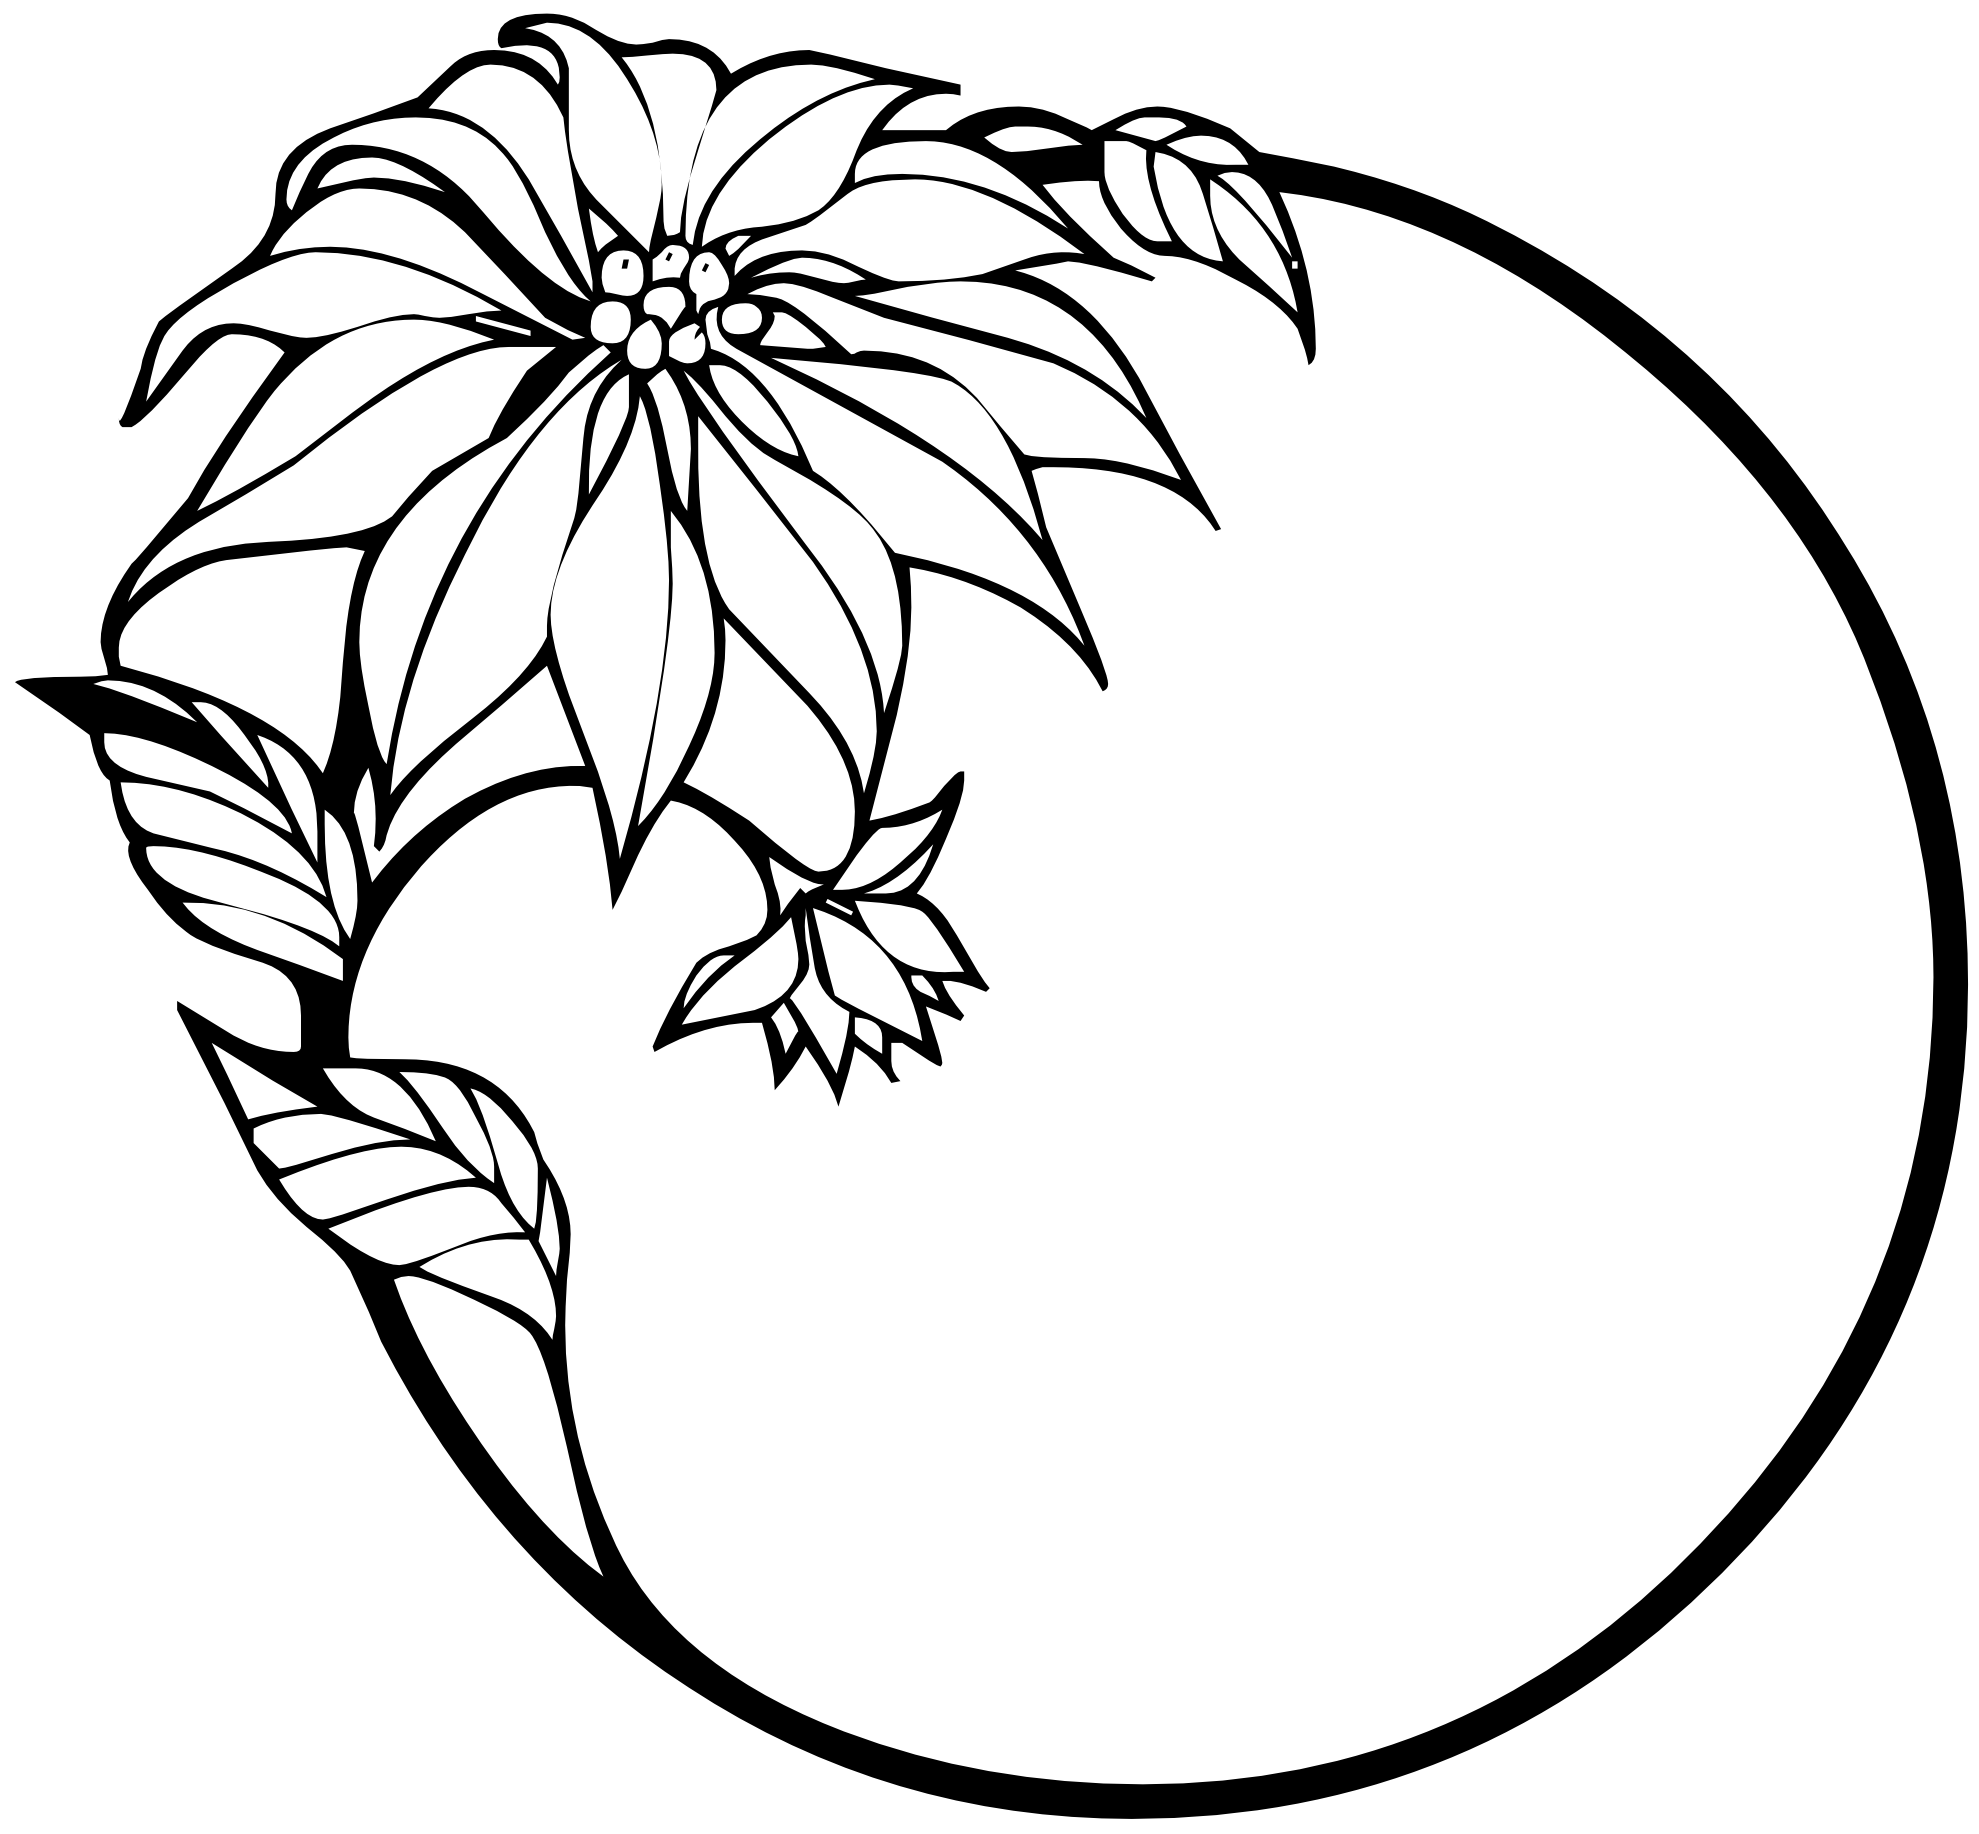 Flowers black and white png. Clipart free icons backgrounds